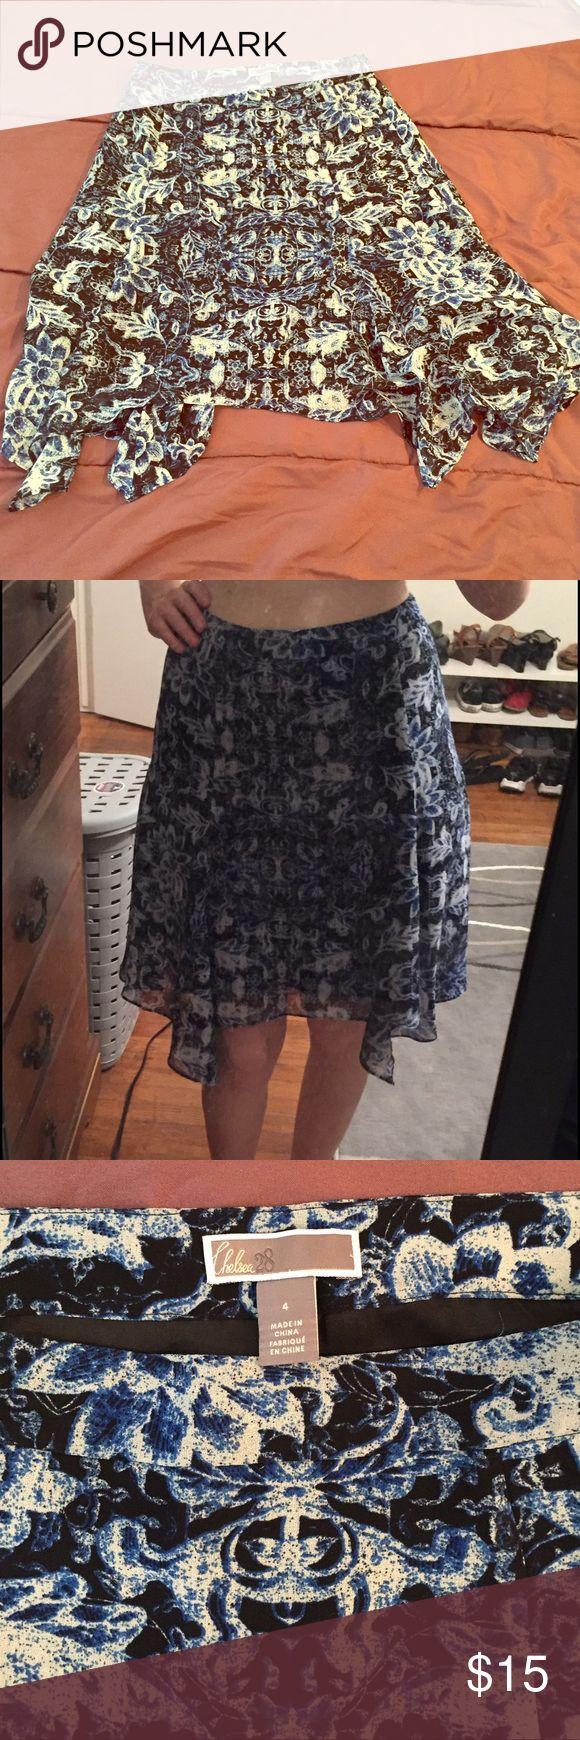 NWOT- Black & Blue patterned skirt 💃🏻💃🏻💃🏻 From Nordstrom Rack. Never worn, but no tags. Fits up on the waist and pairs well with black top tucked in. Great for work or a night out dancing. Perfect condition. Nordstrom Skirts Midi